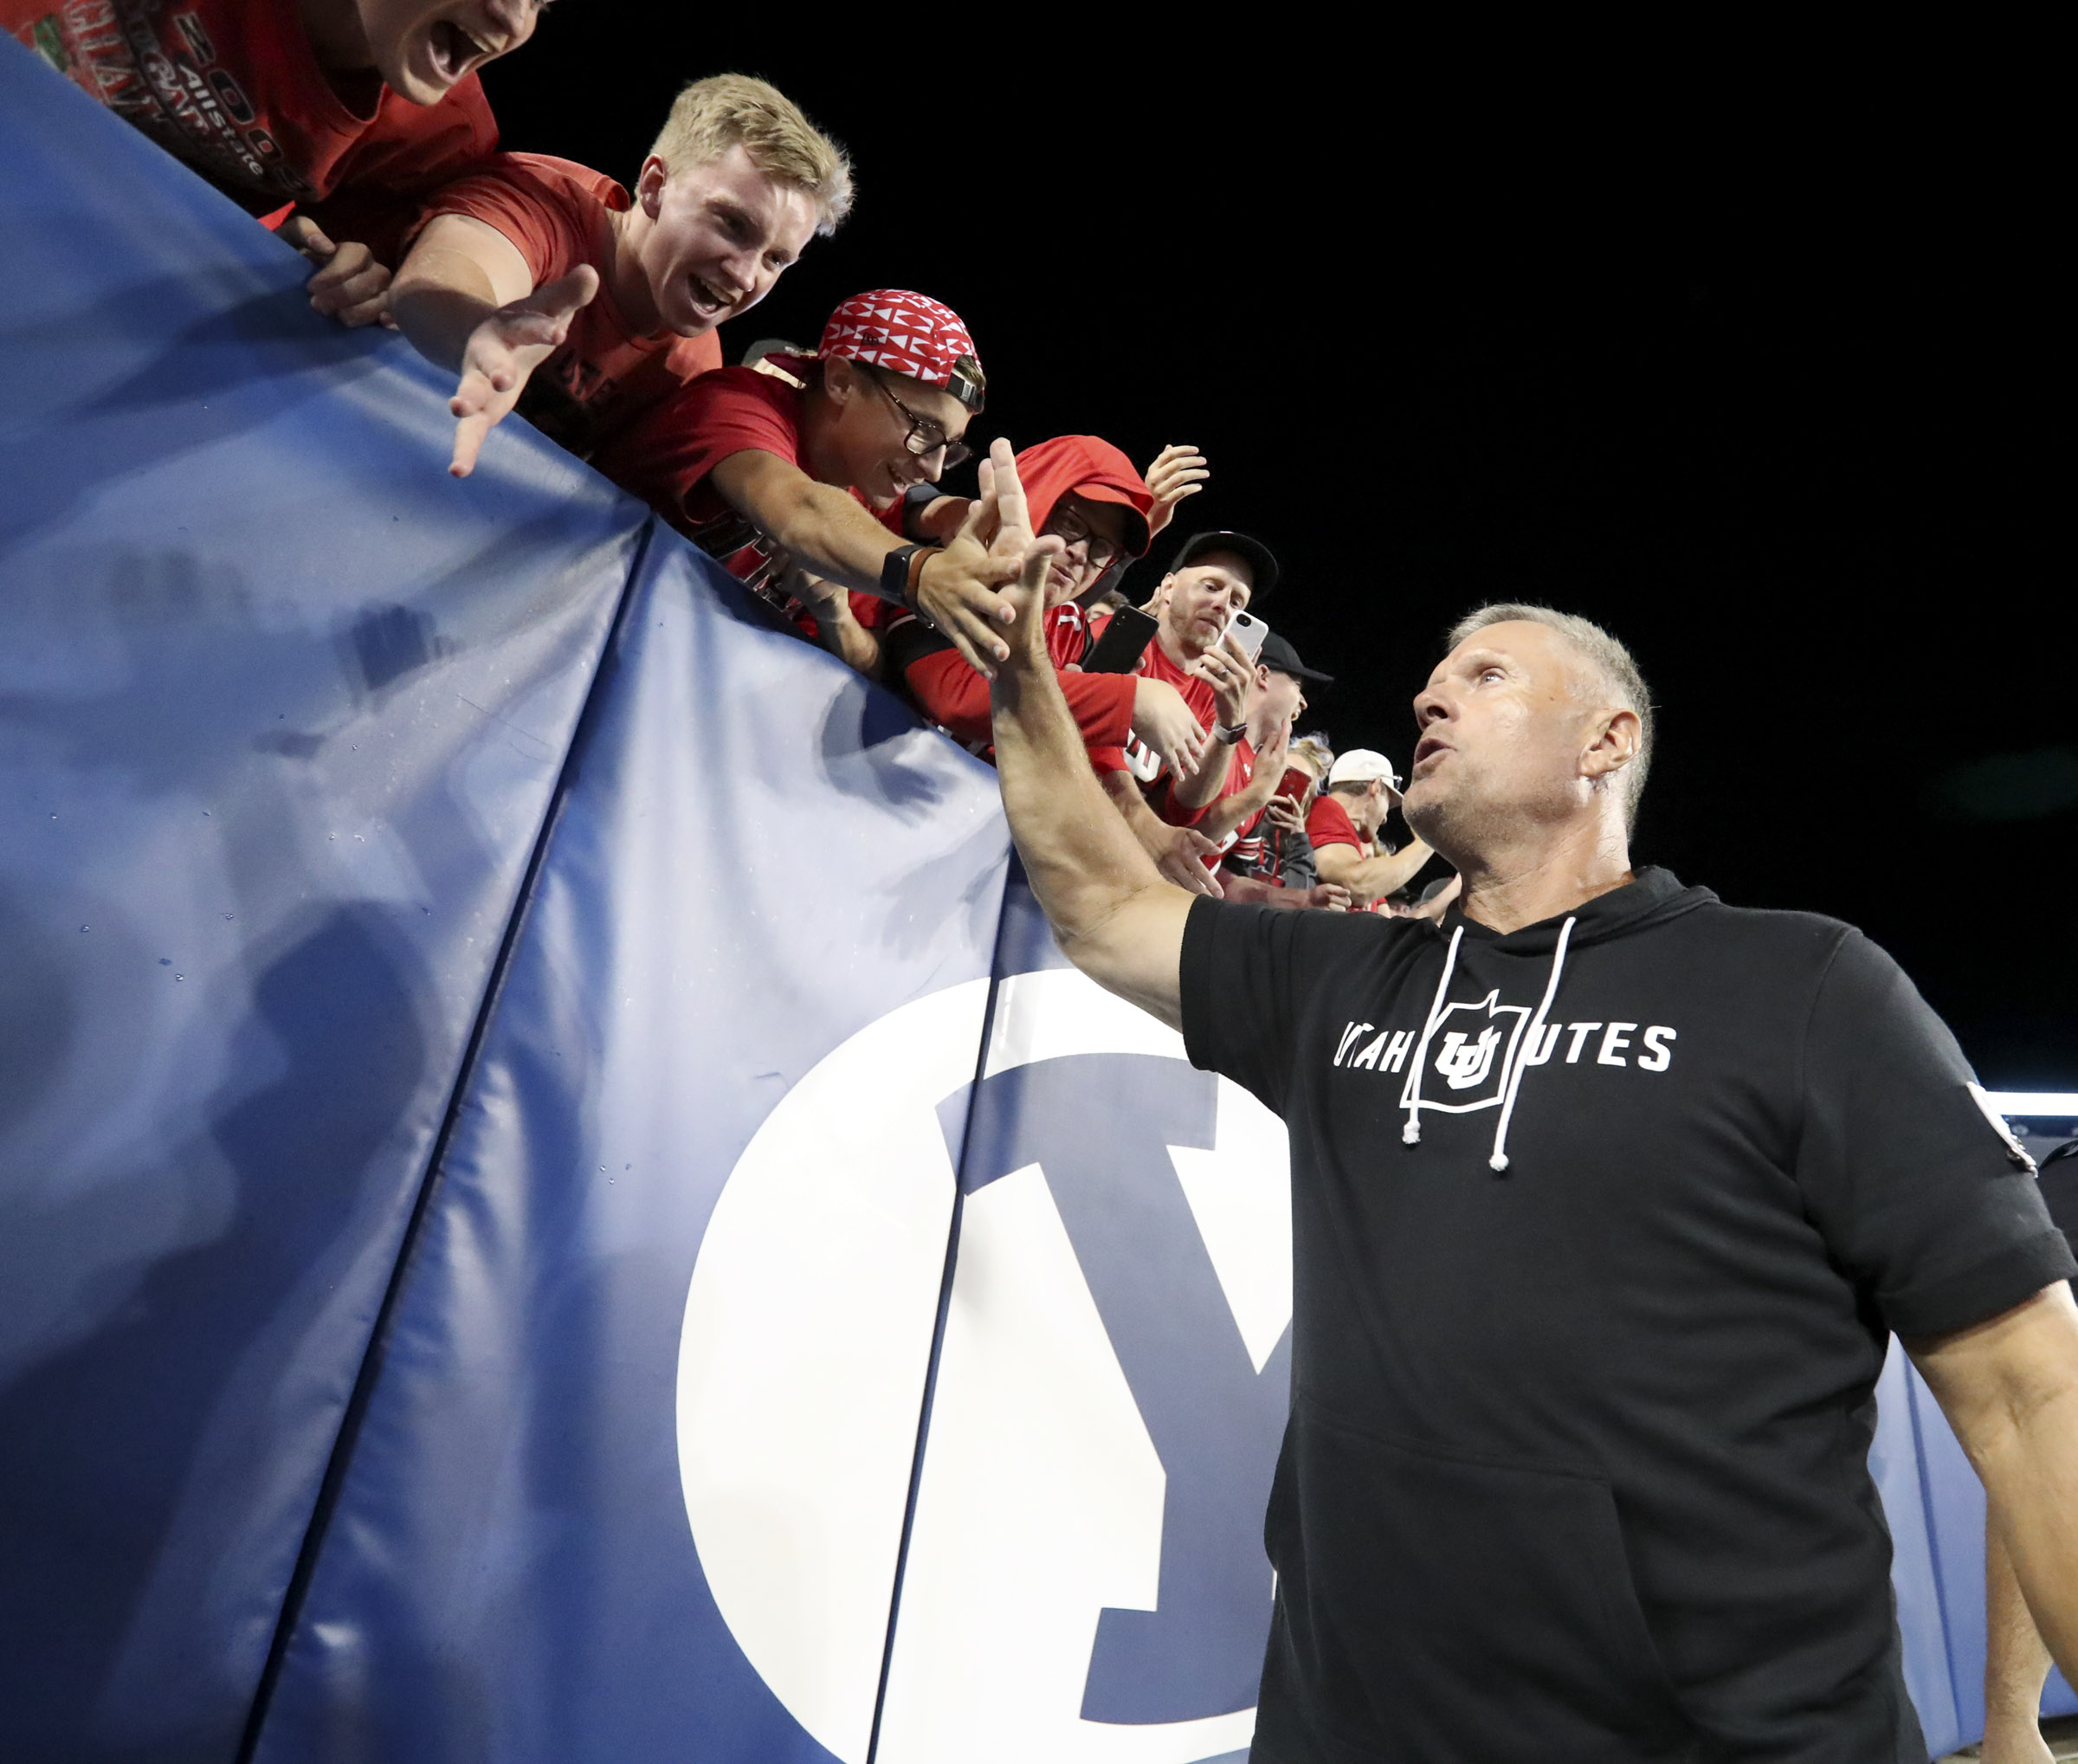 Fans stretch to high-five Utah Utes head coach Kyle Whittingham after the Utes defeated BYU 30-12 at LaVell Edwards Stadium in Provo on Friday, Aug. 30, 2019.